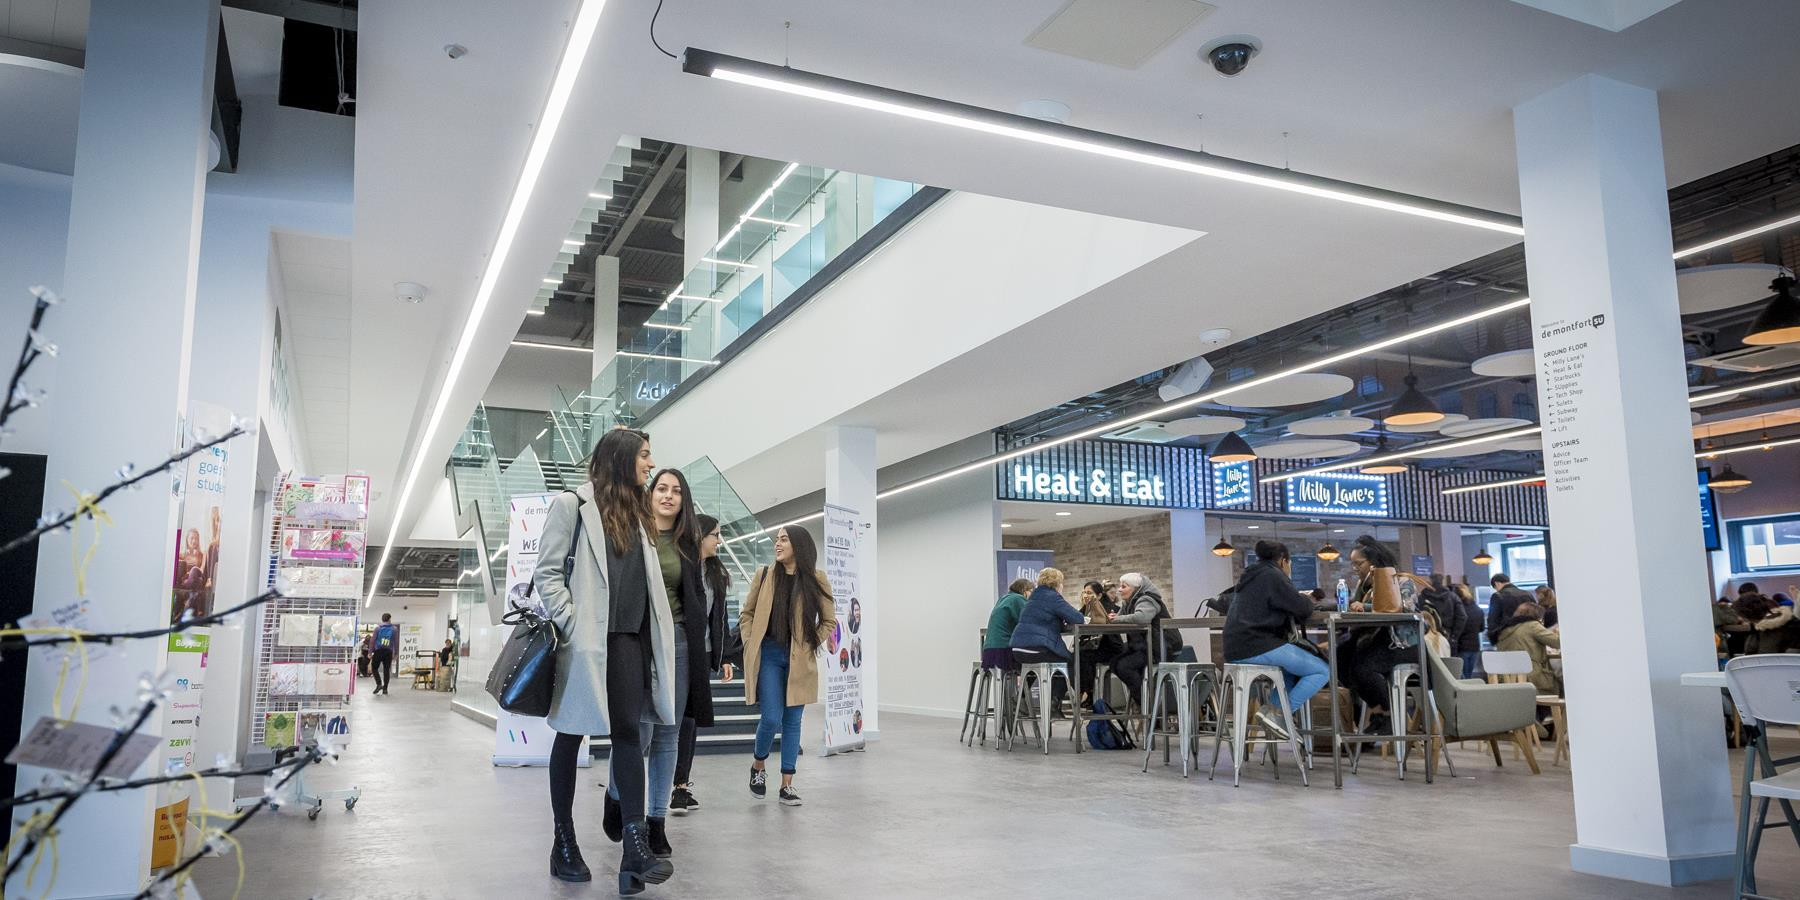 Find out about the three universities located in the city and county, with a combined student population of over 35,000 - Loughborough University, De Montfort University and the University of Leicester.